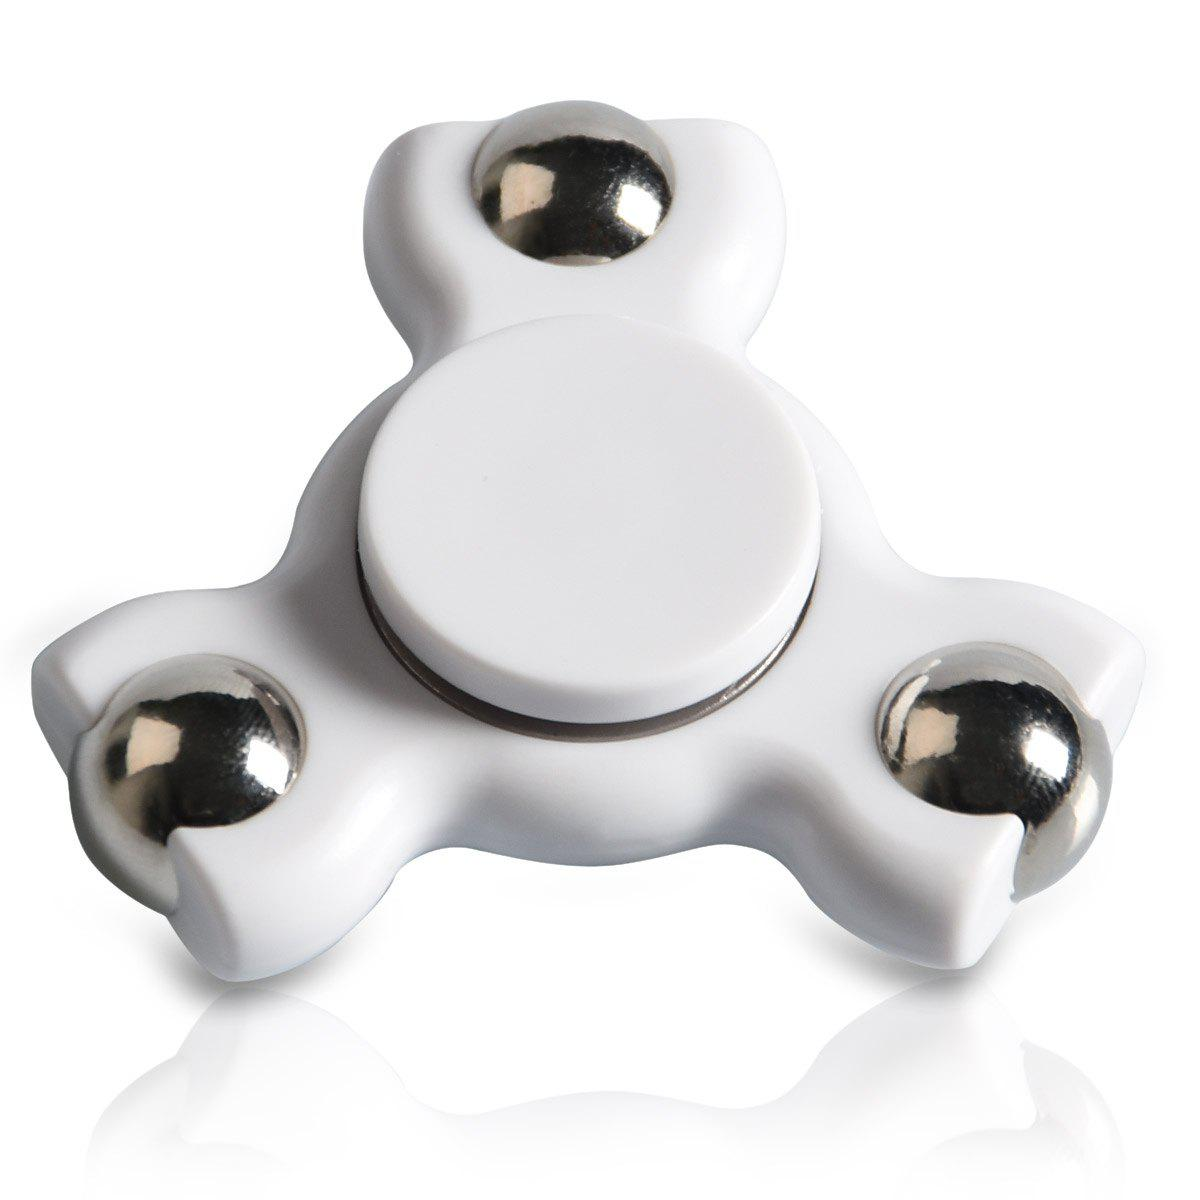 Focus Toy Triangle Ball Bearing Fidget Spinner - Blanc